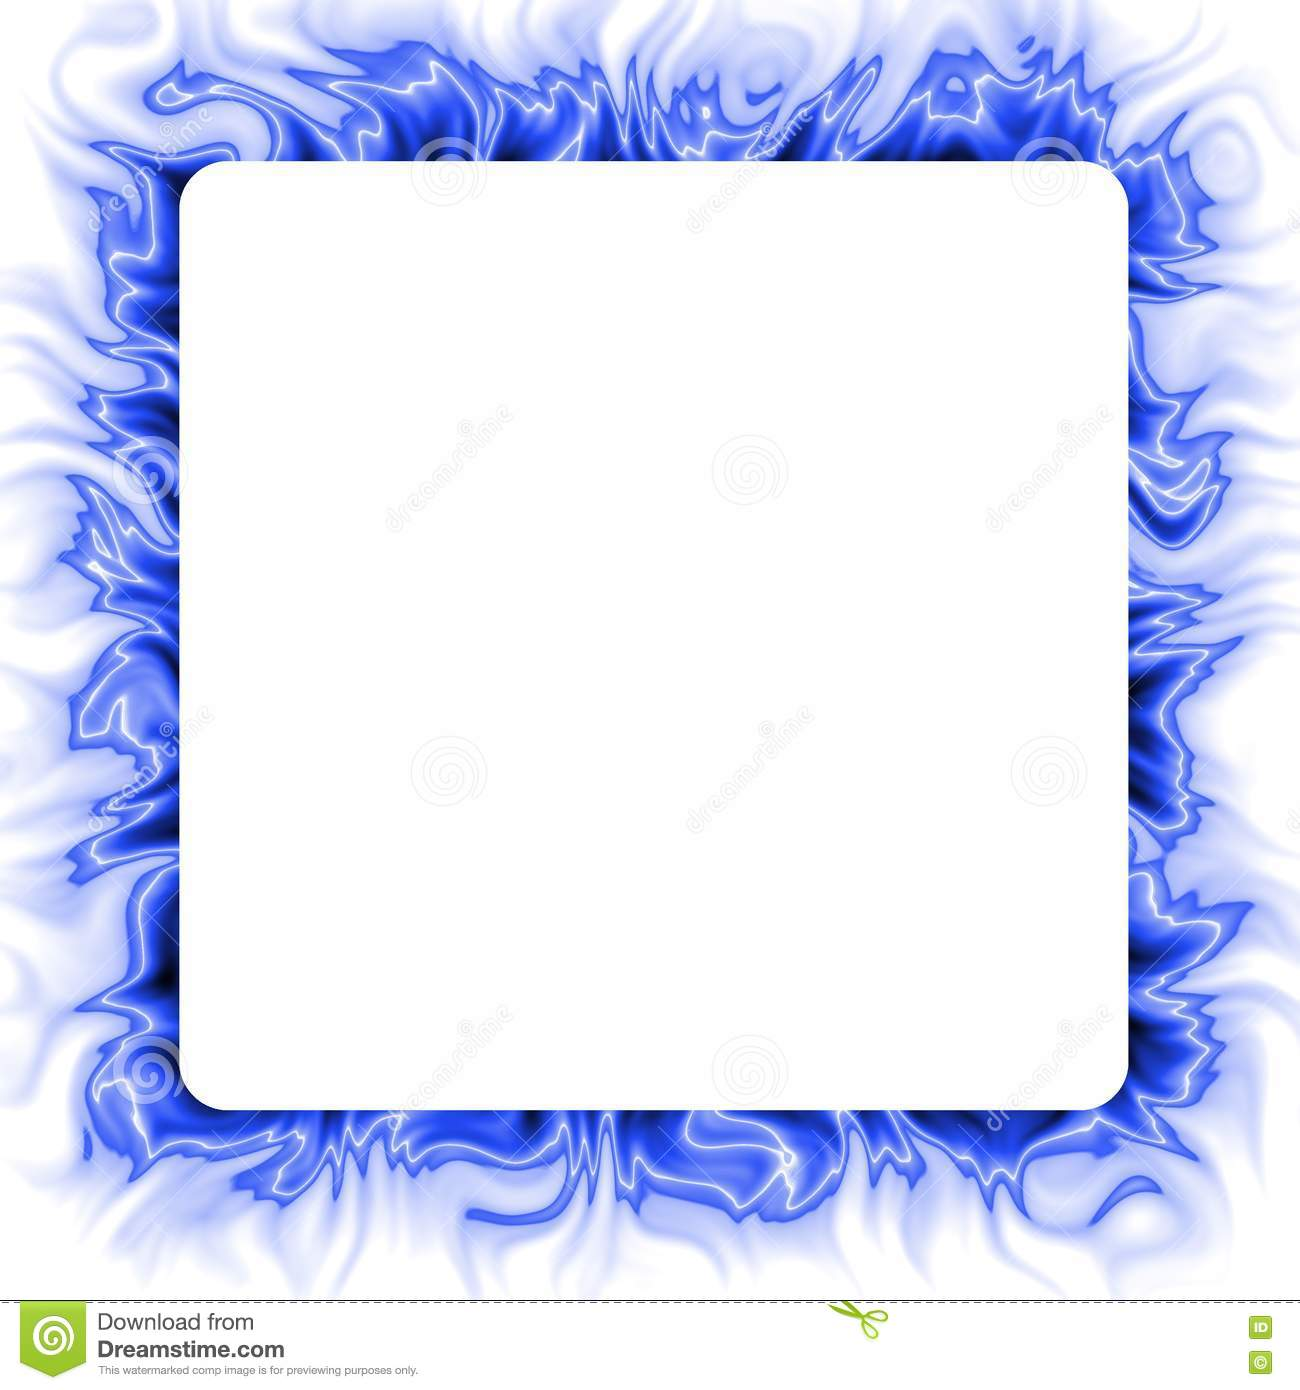 Black And White Framing Level Pictures to Pin on Pinterest - PinsDaddy